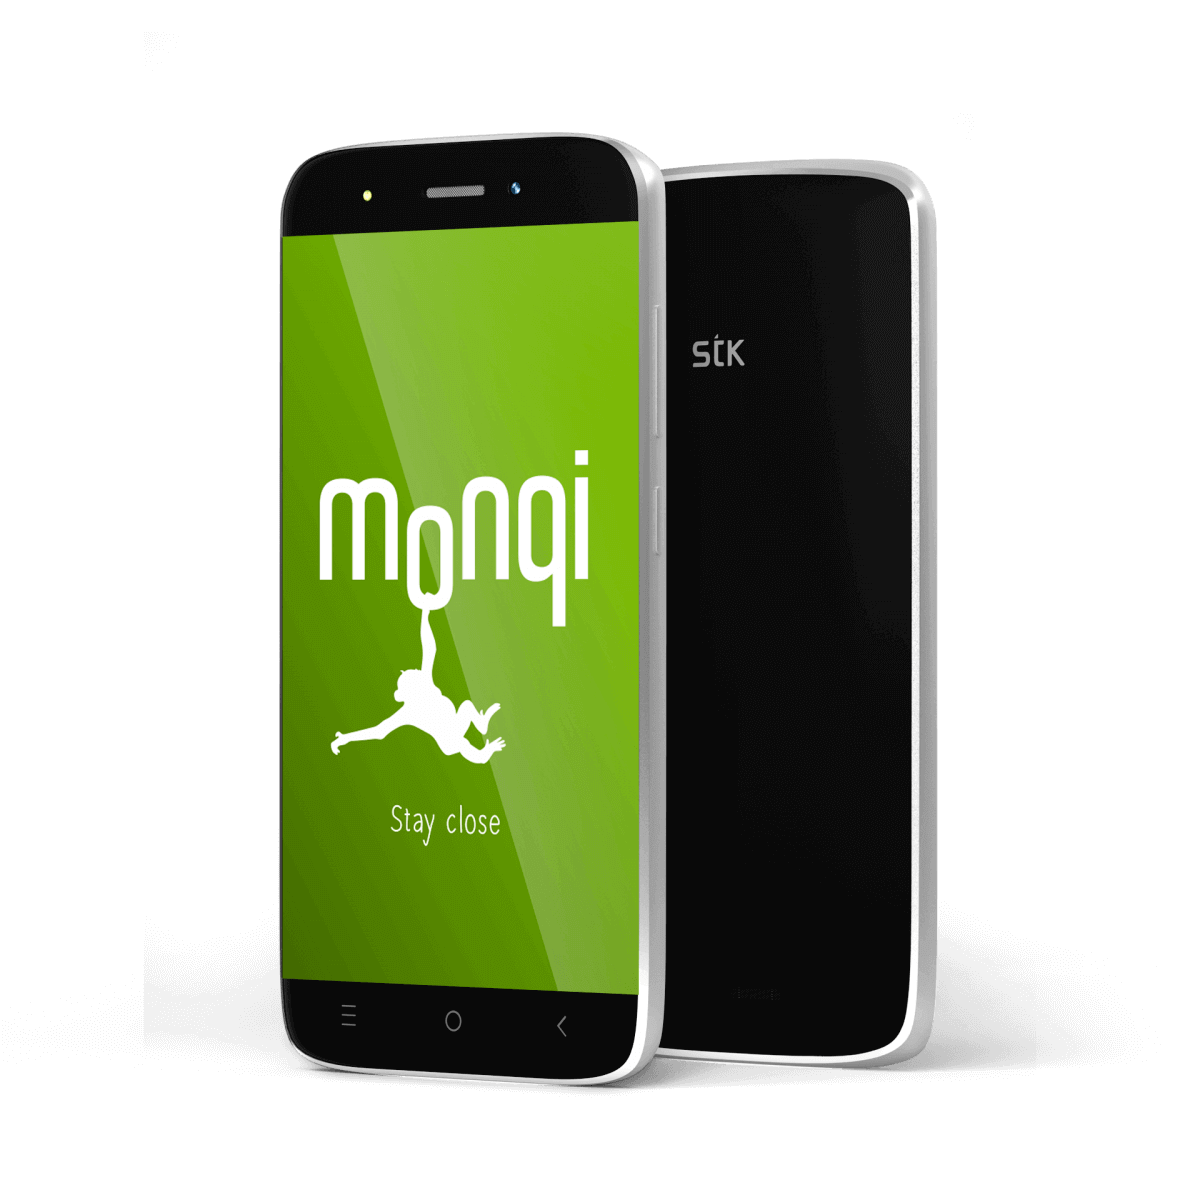 Monqi Smart Phone | Geek and Gadgets Christmas Gift Guide